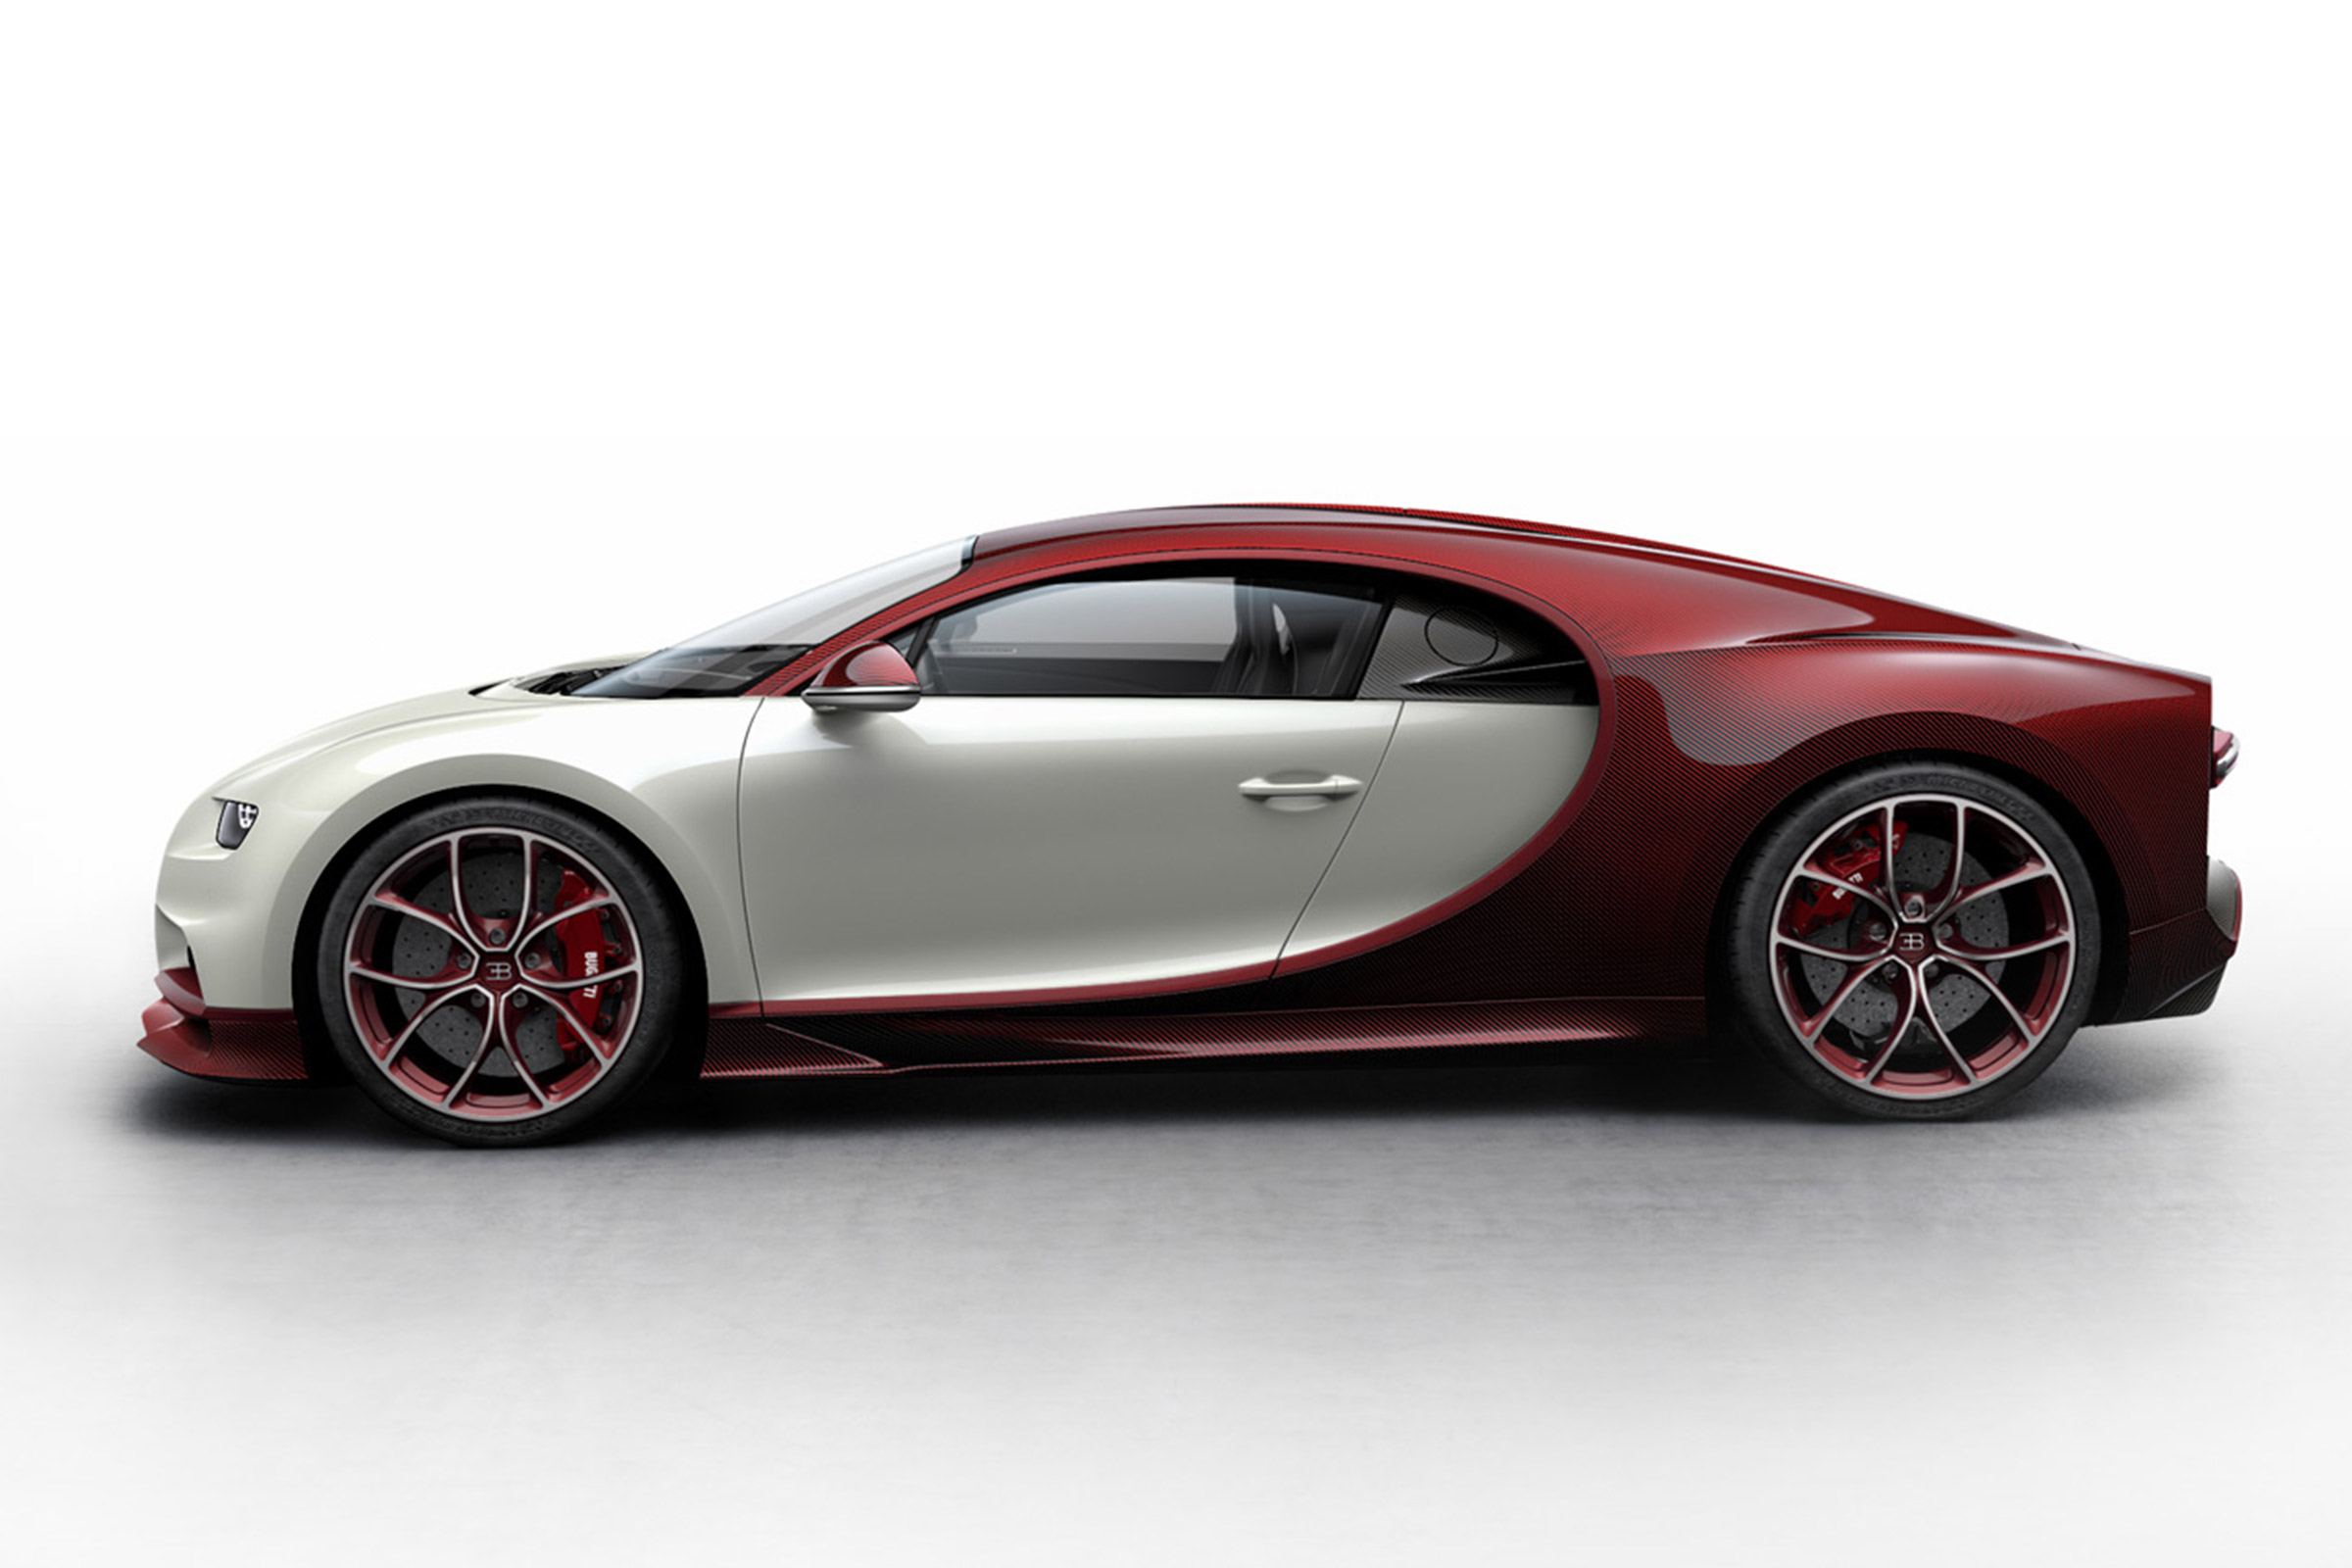 Our list of exotic cars includes the Bugatti Chiron